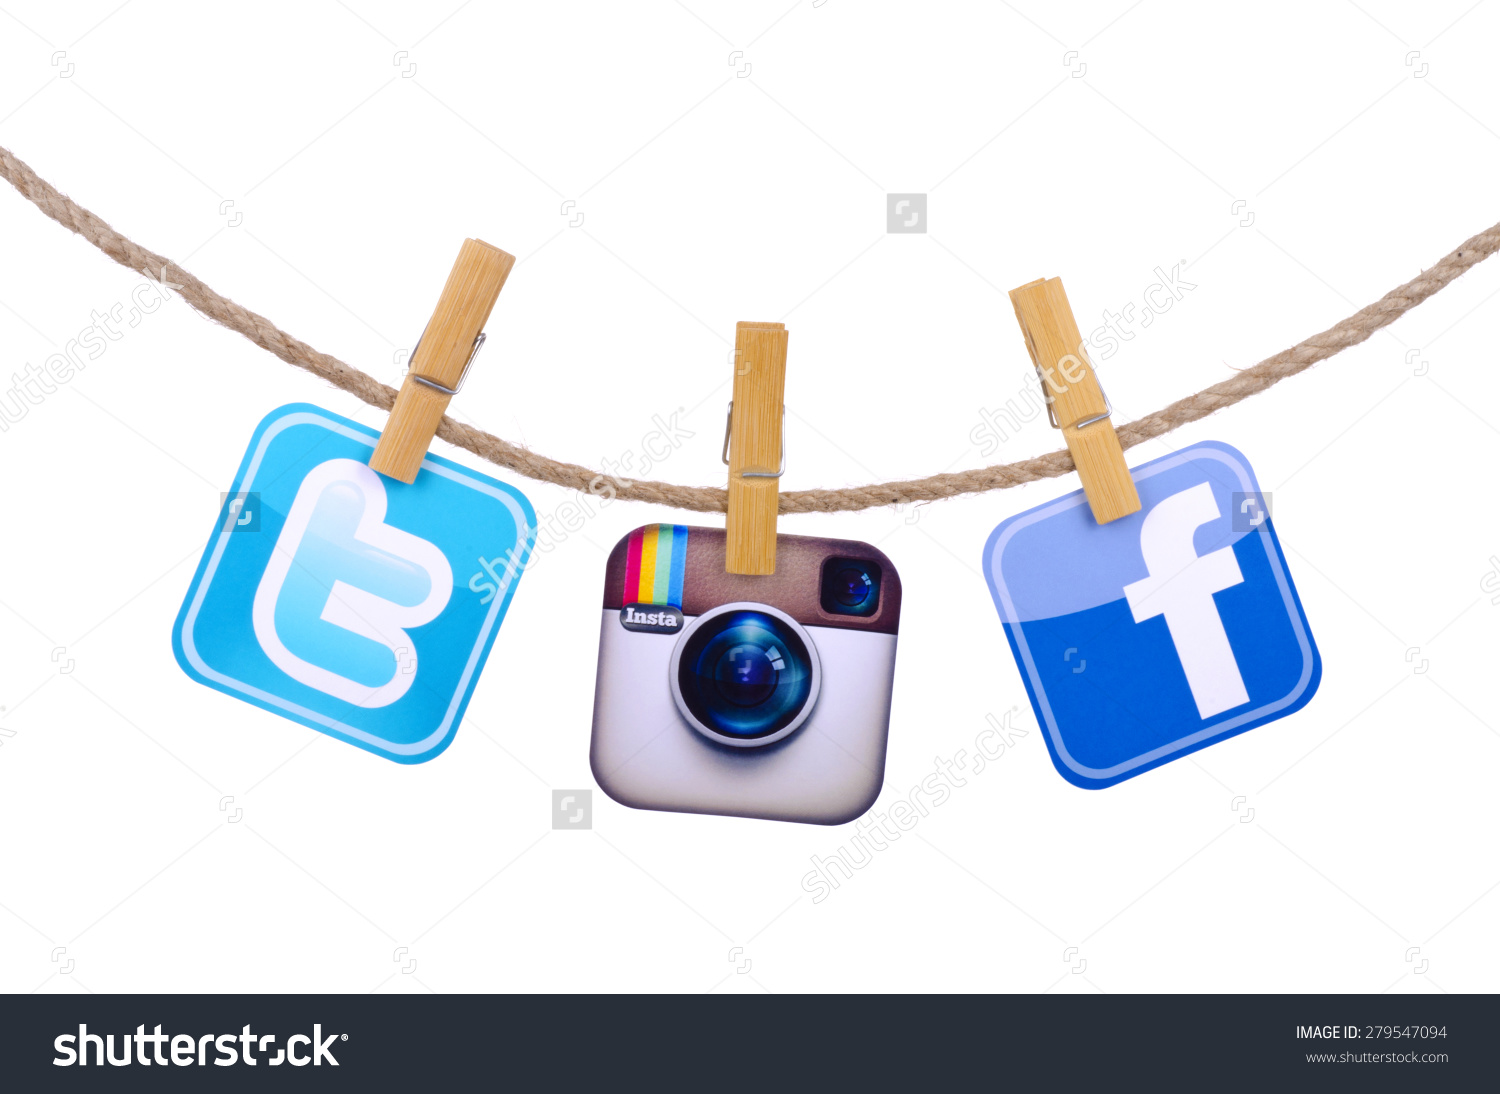 Facebook twitter clipart svg library library Facebook twitter instagram clipart - ClipartFest svg library library